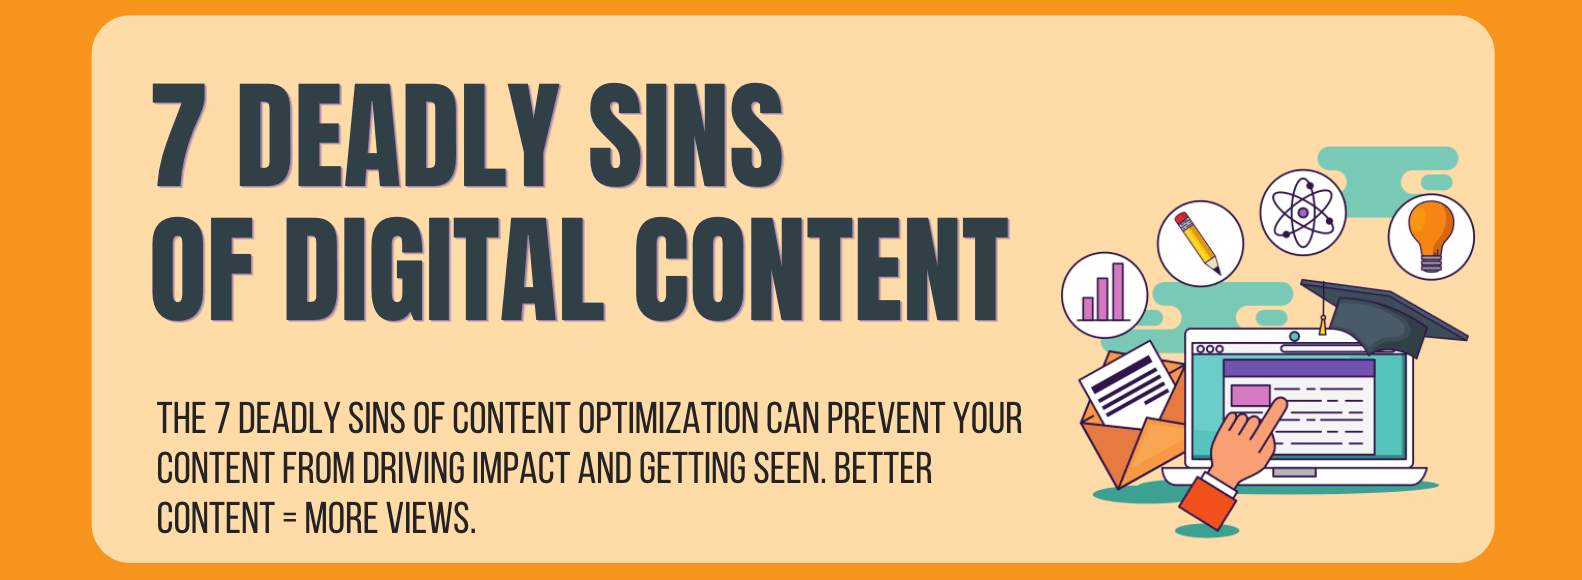 7 Deadly sins of digital content